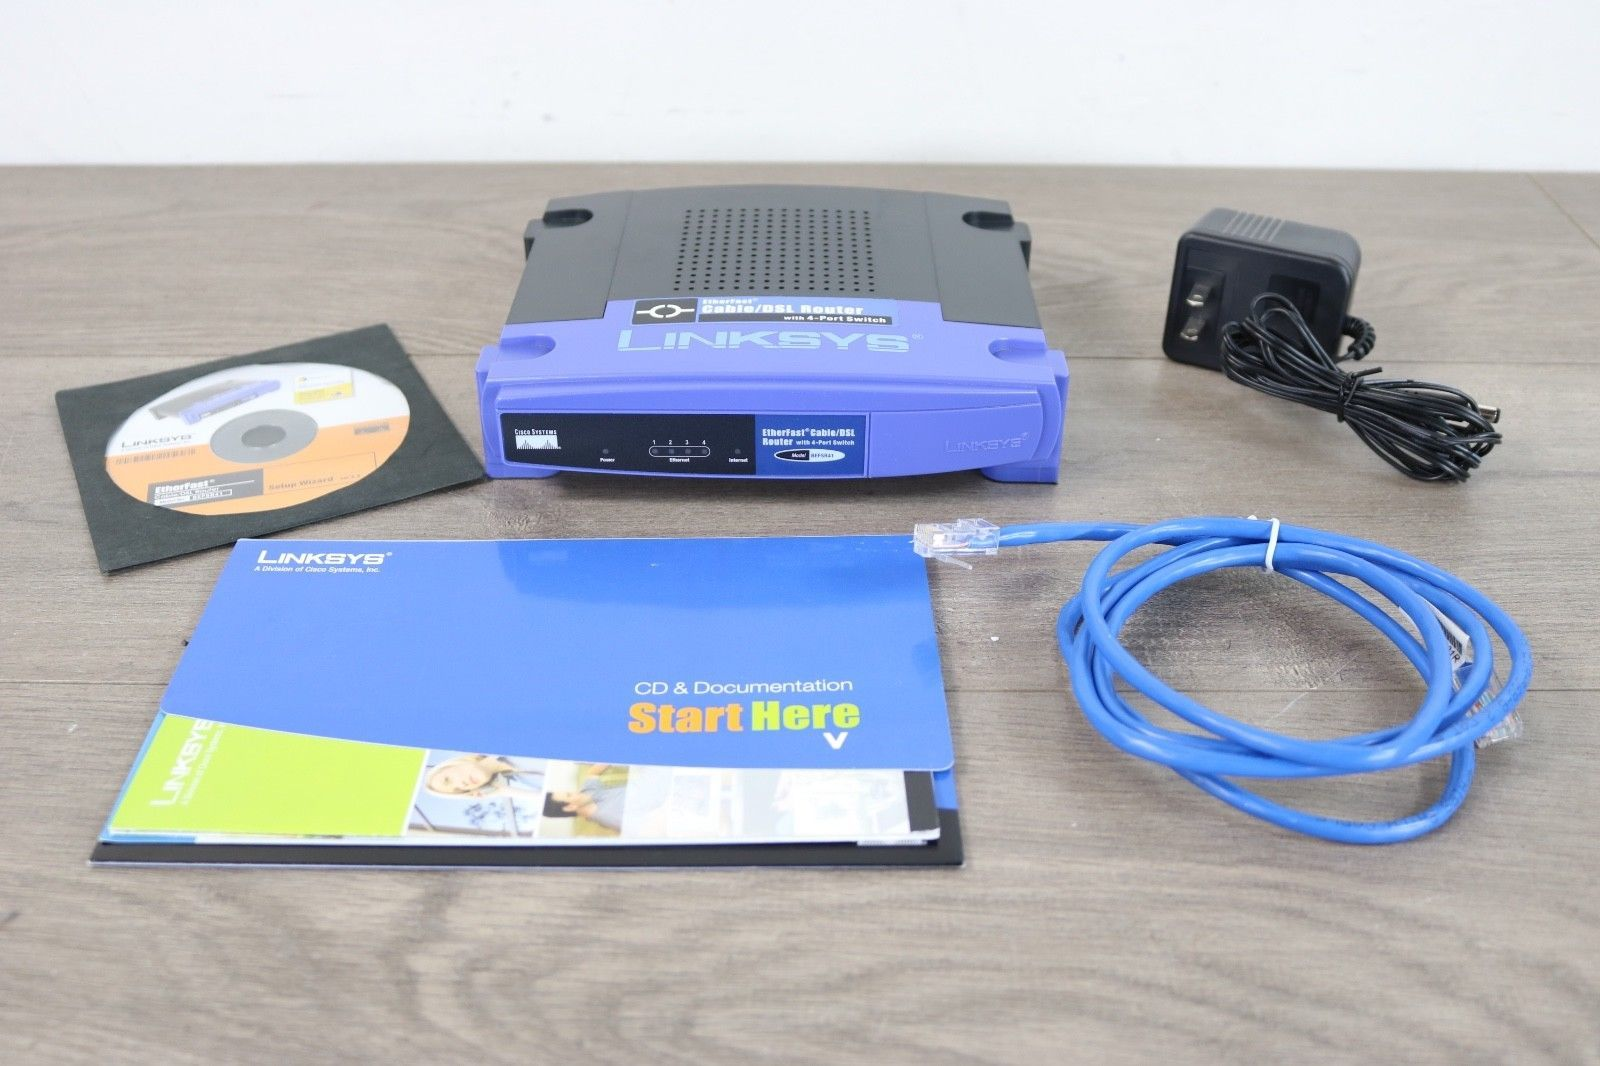 Linksys Etherfast Cable Dsl Router With 4 Port Switch Model Befsr41